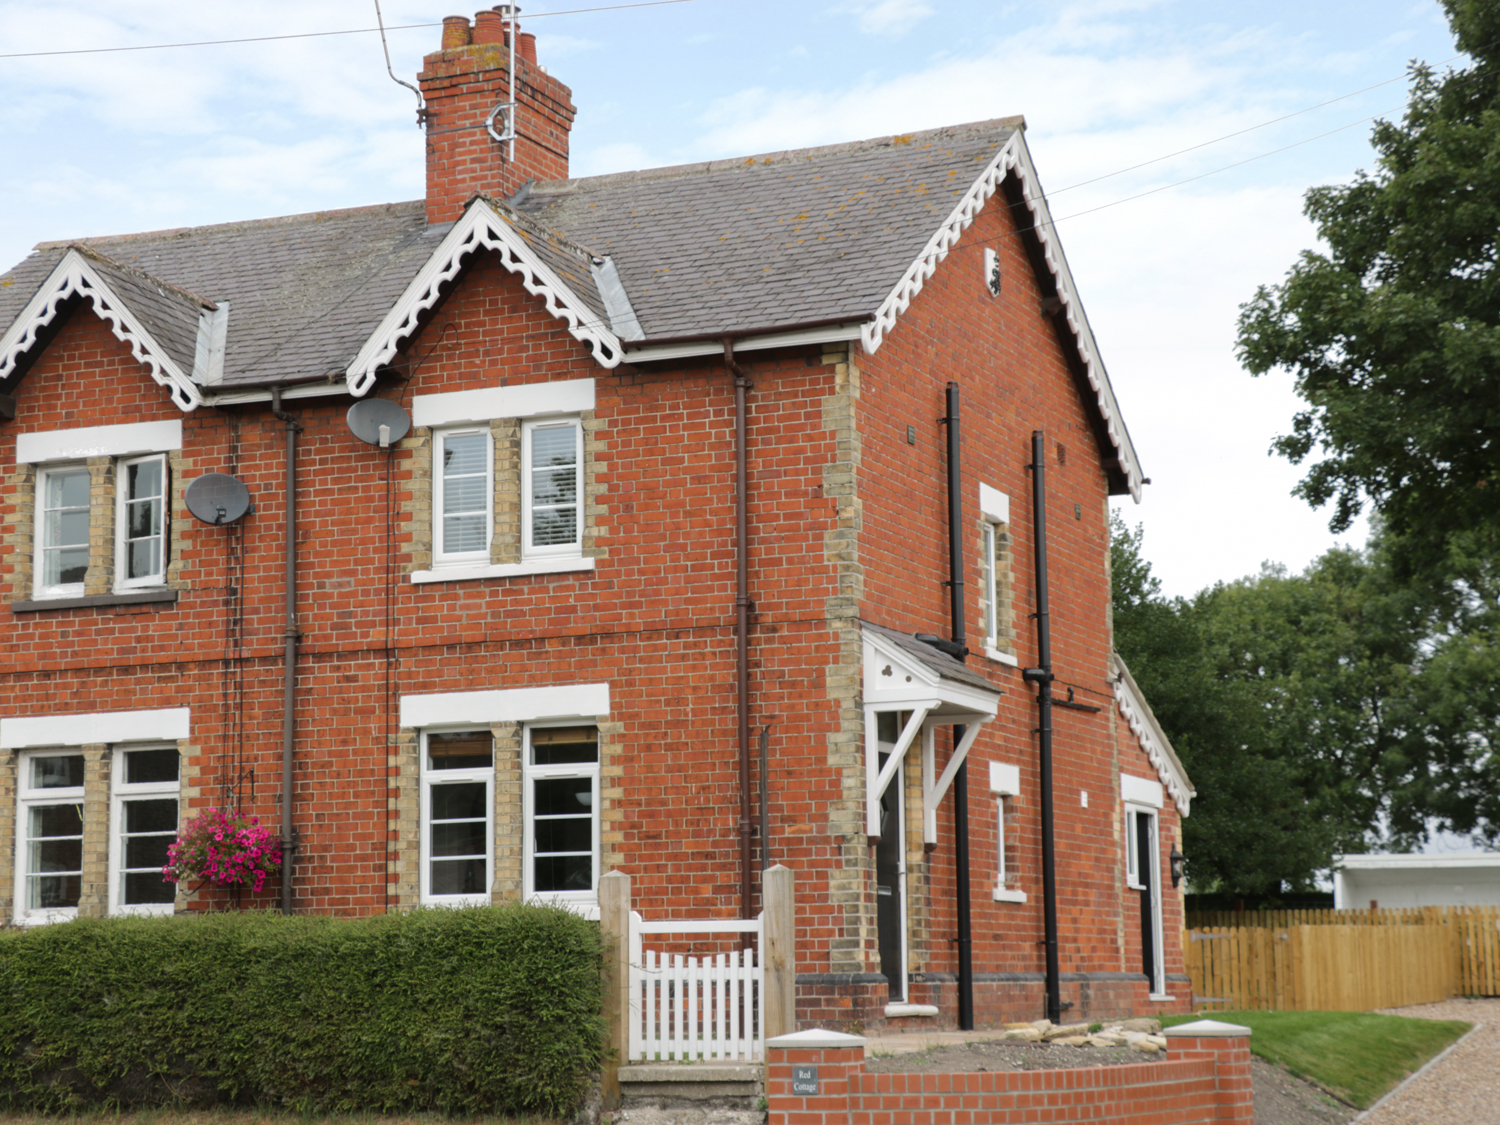 3 bedroom Cottage for rent in Beverley